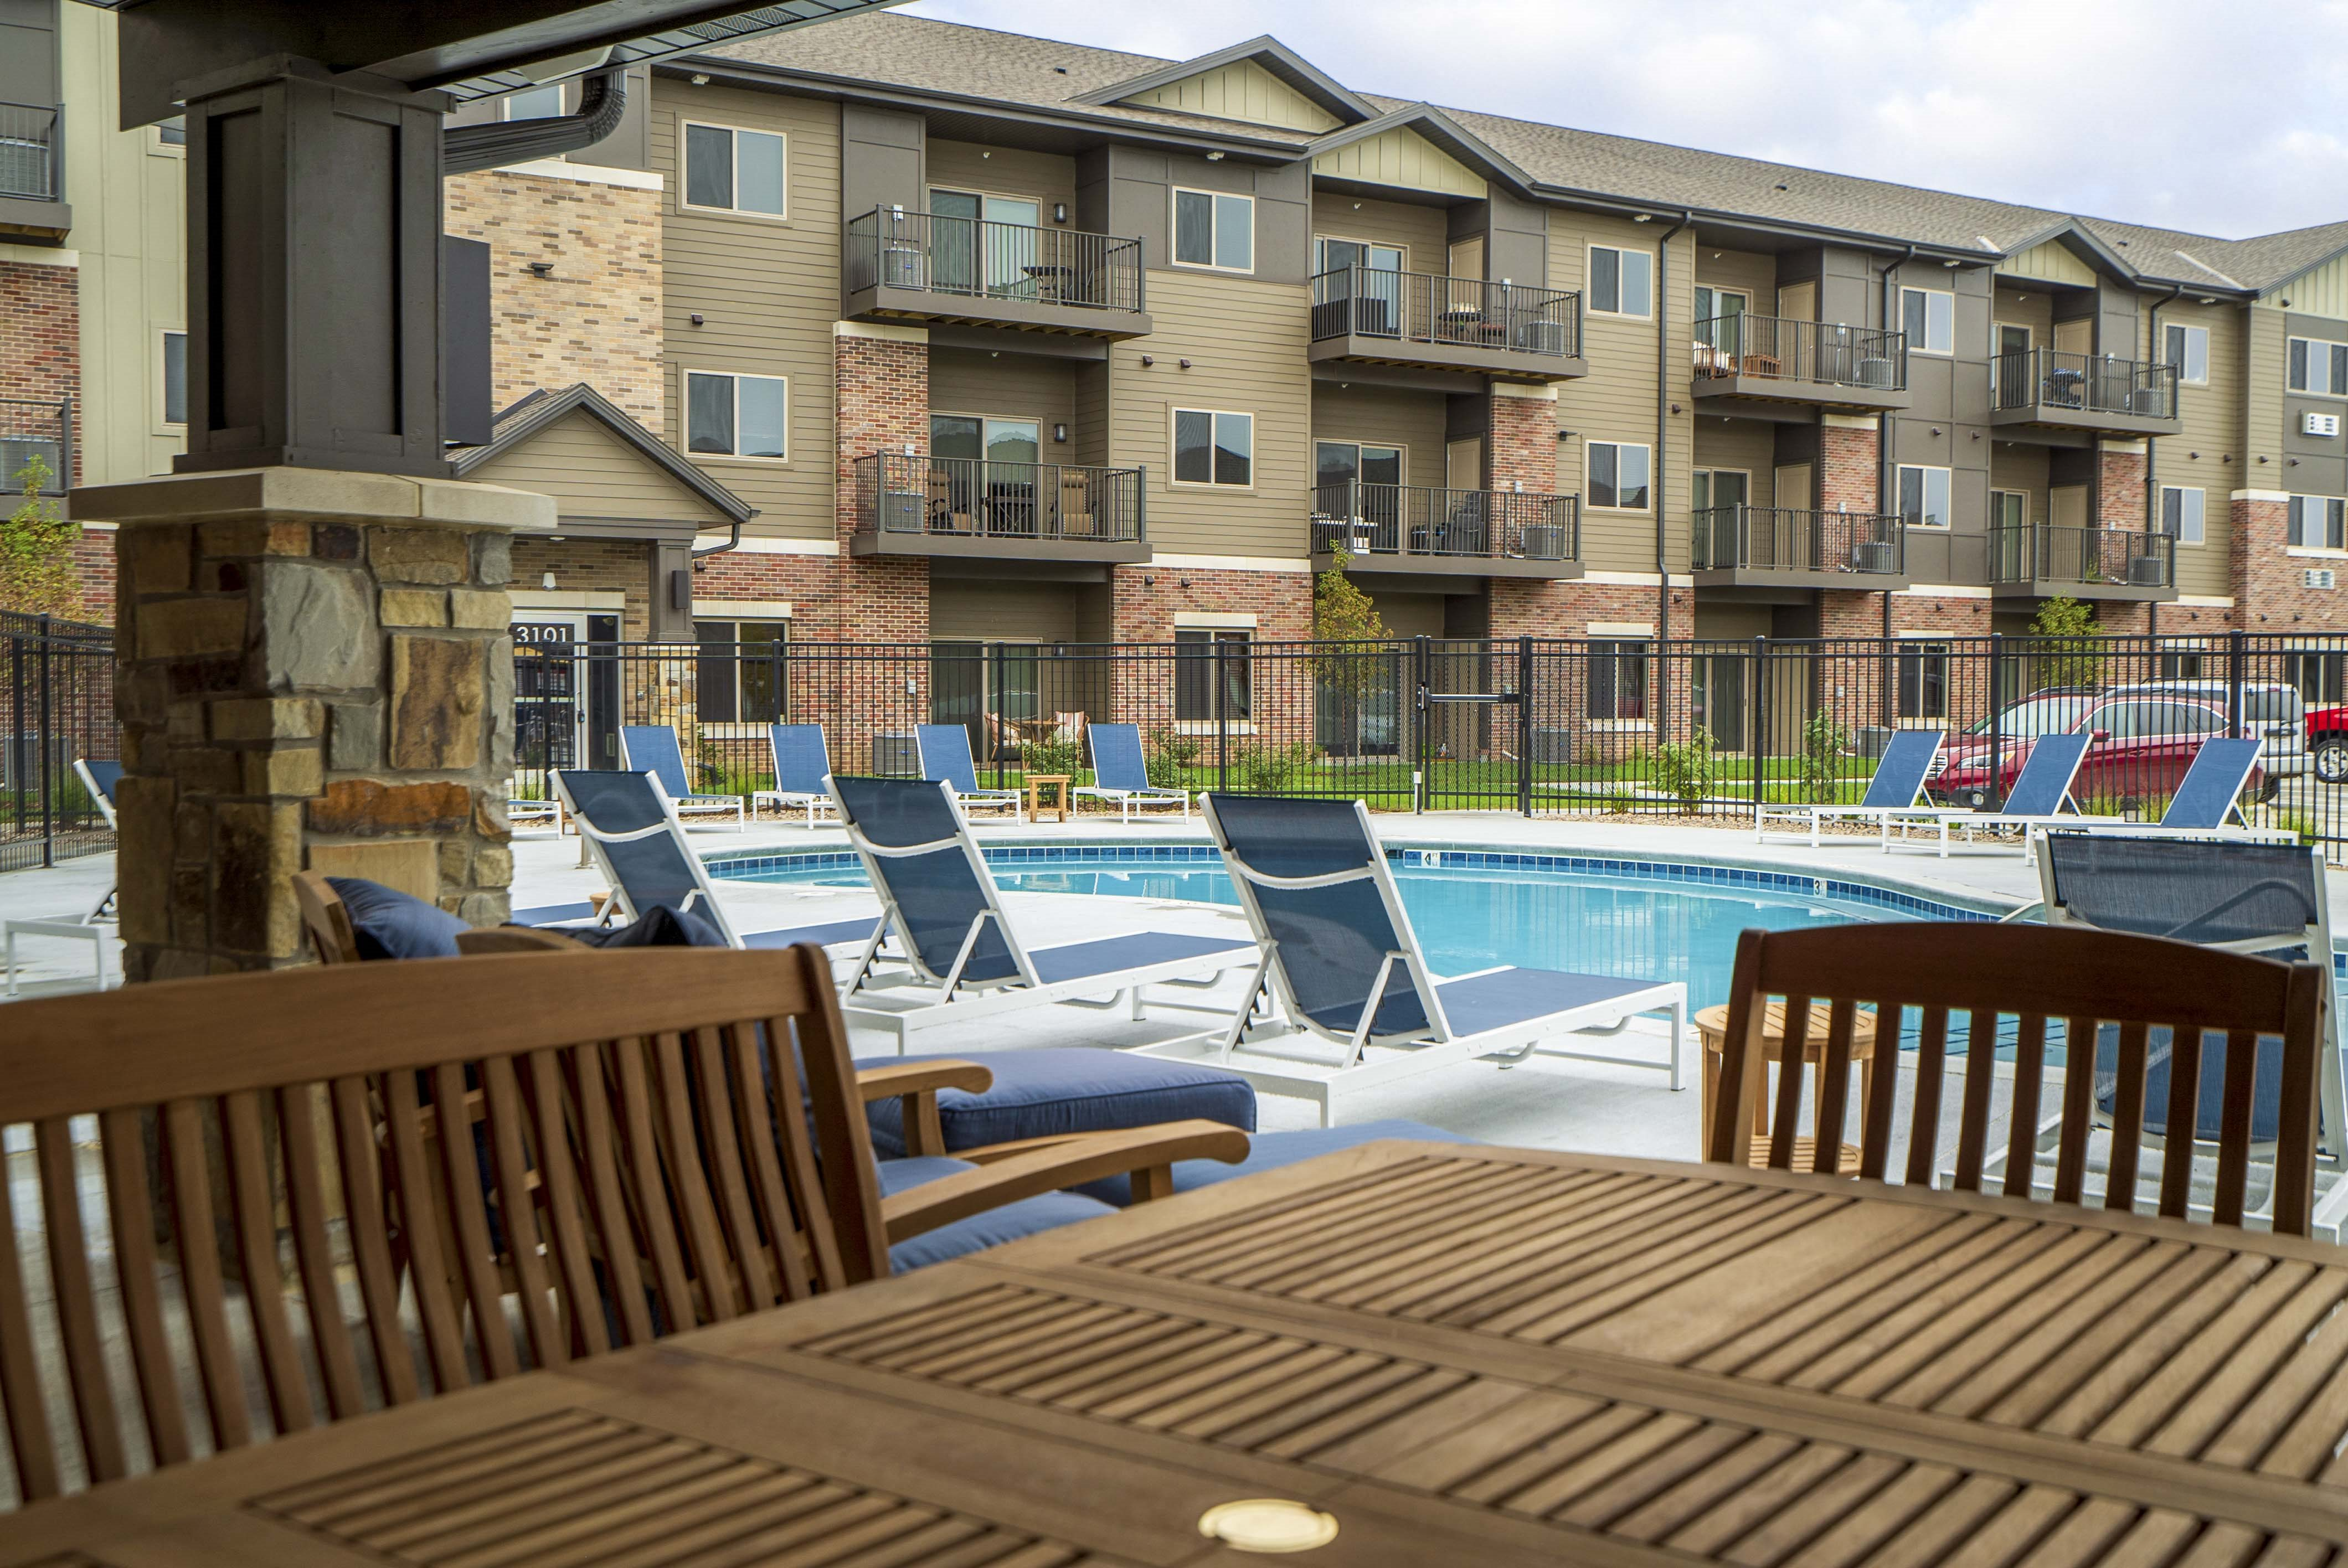 Exteriors - Relaxing patio, Luxury pool and hot tub view of WH Flats new luxury apartments in south Lincoln NE 68516